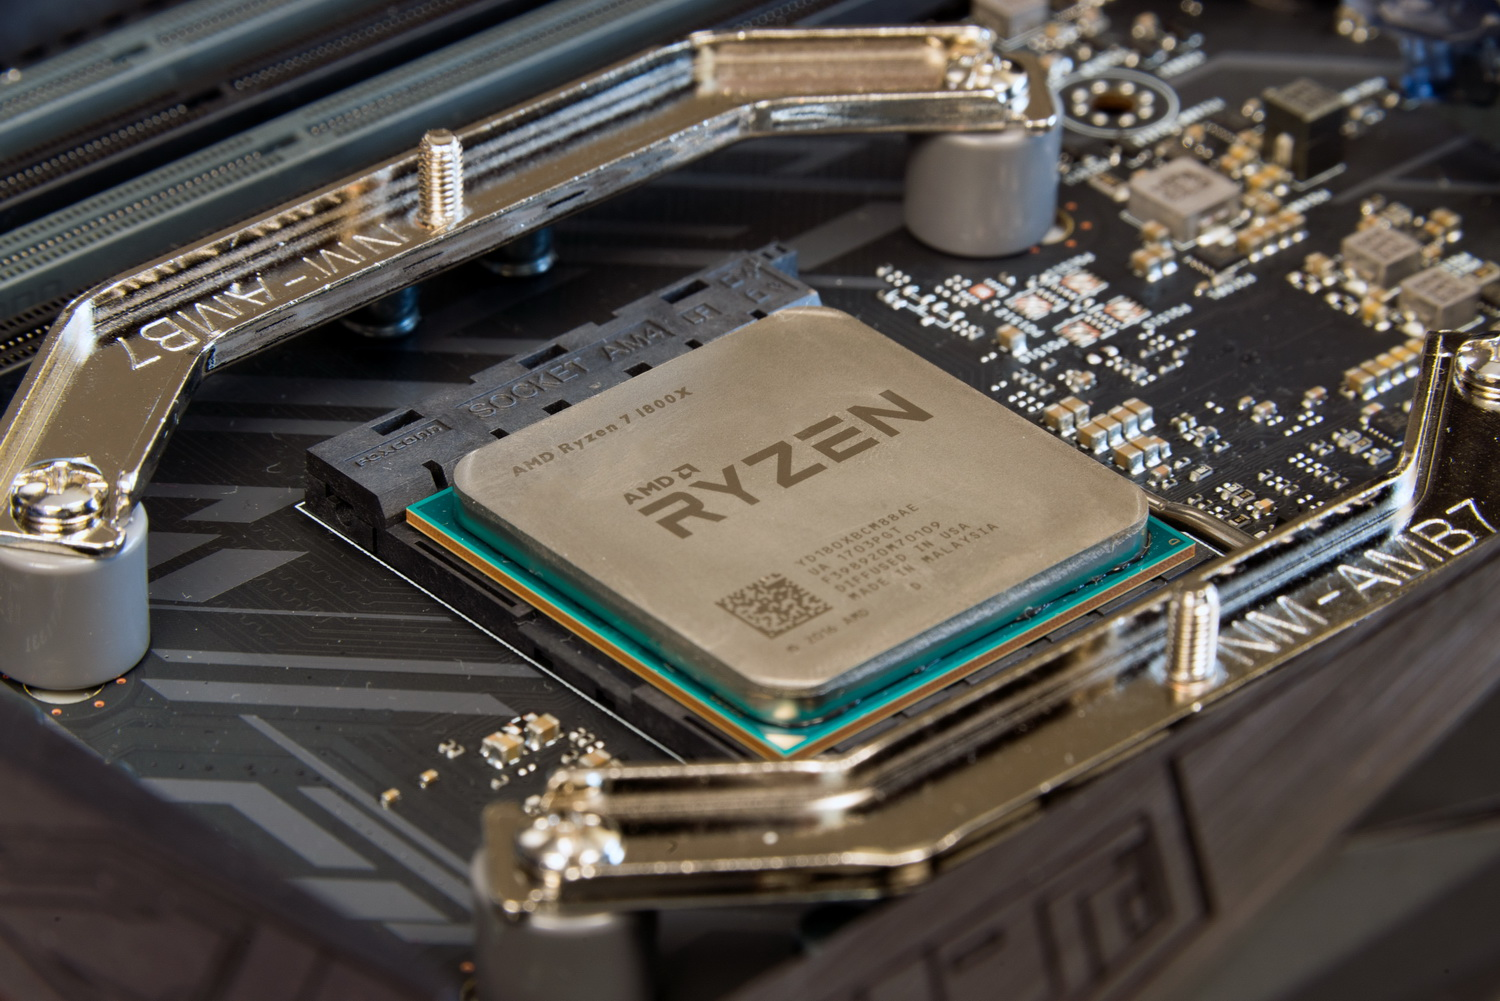 AMD Releases Community Update on Several Ryzen CPU Concerns